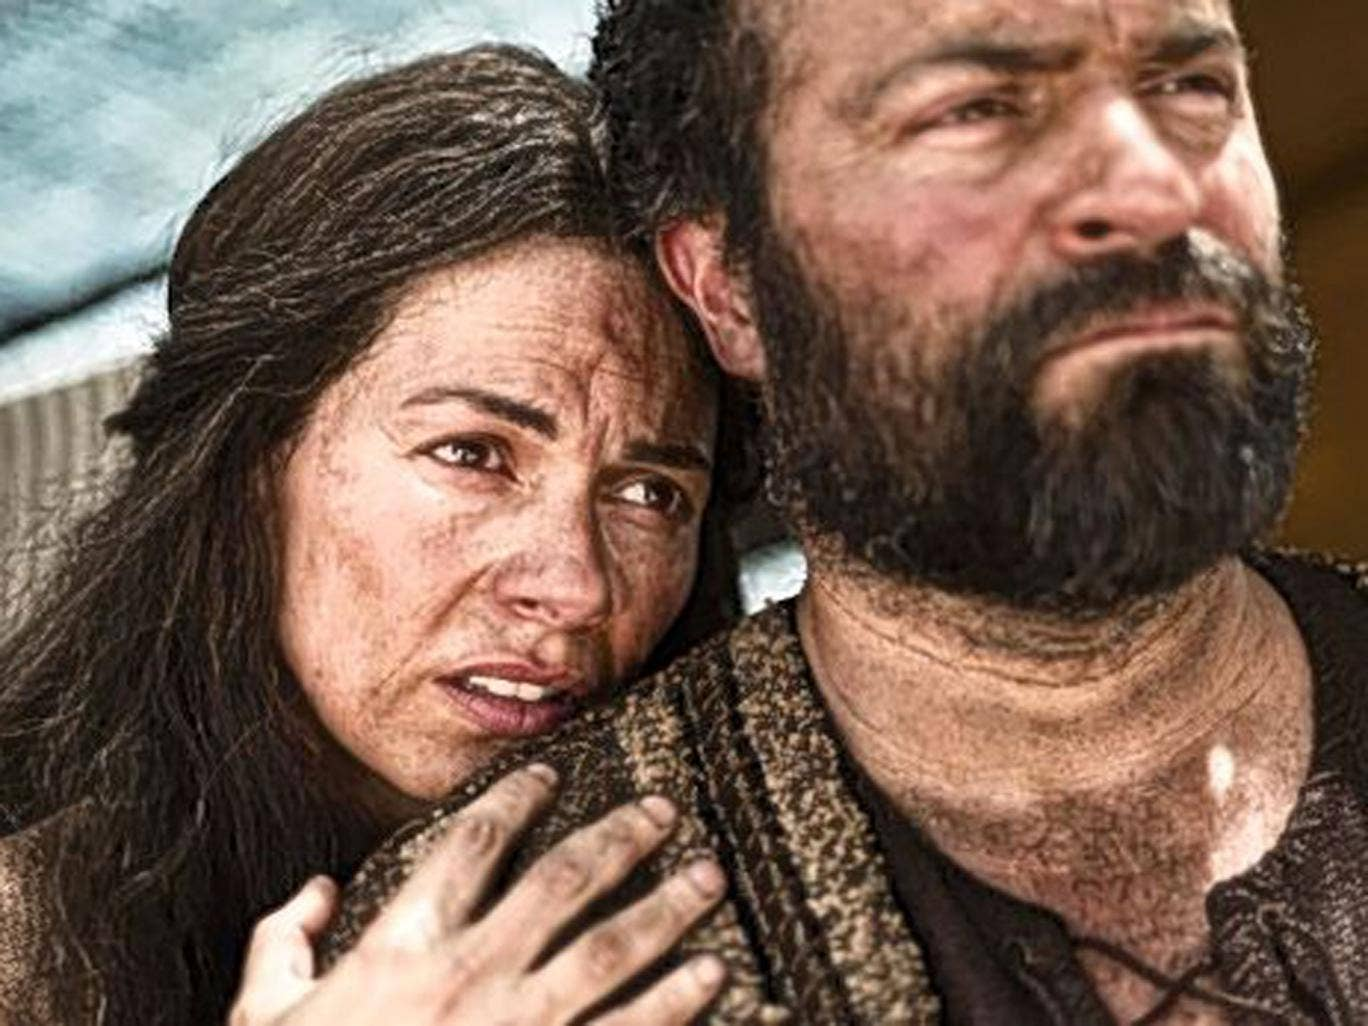 God squad: Sarah and Abraham in 'The Bible'